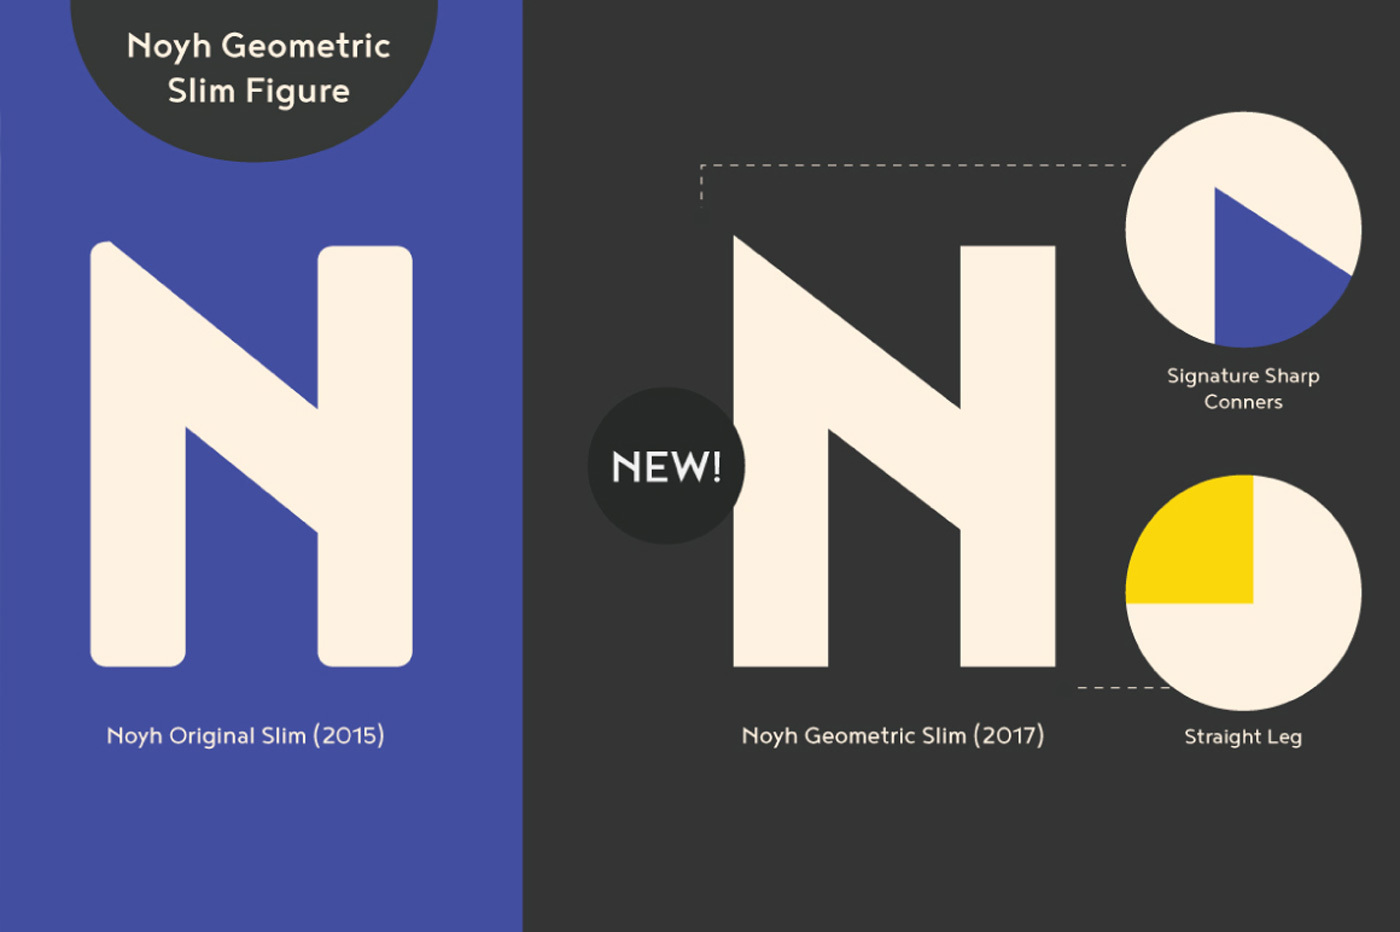 Noyh Geometric Slim contains 18 styles and family package options.